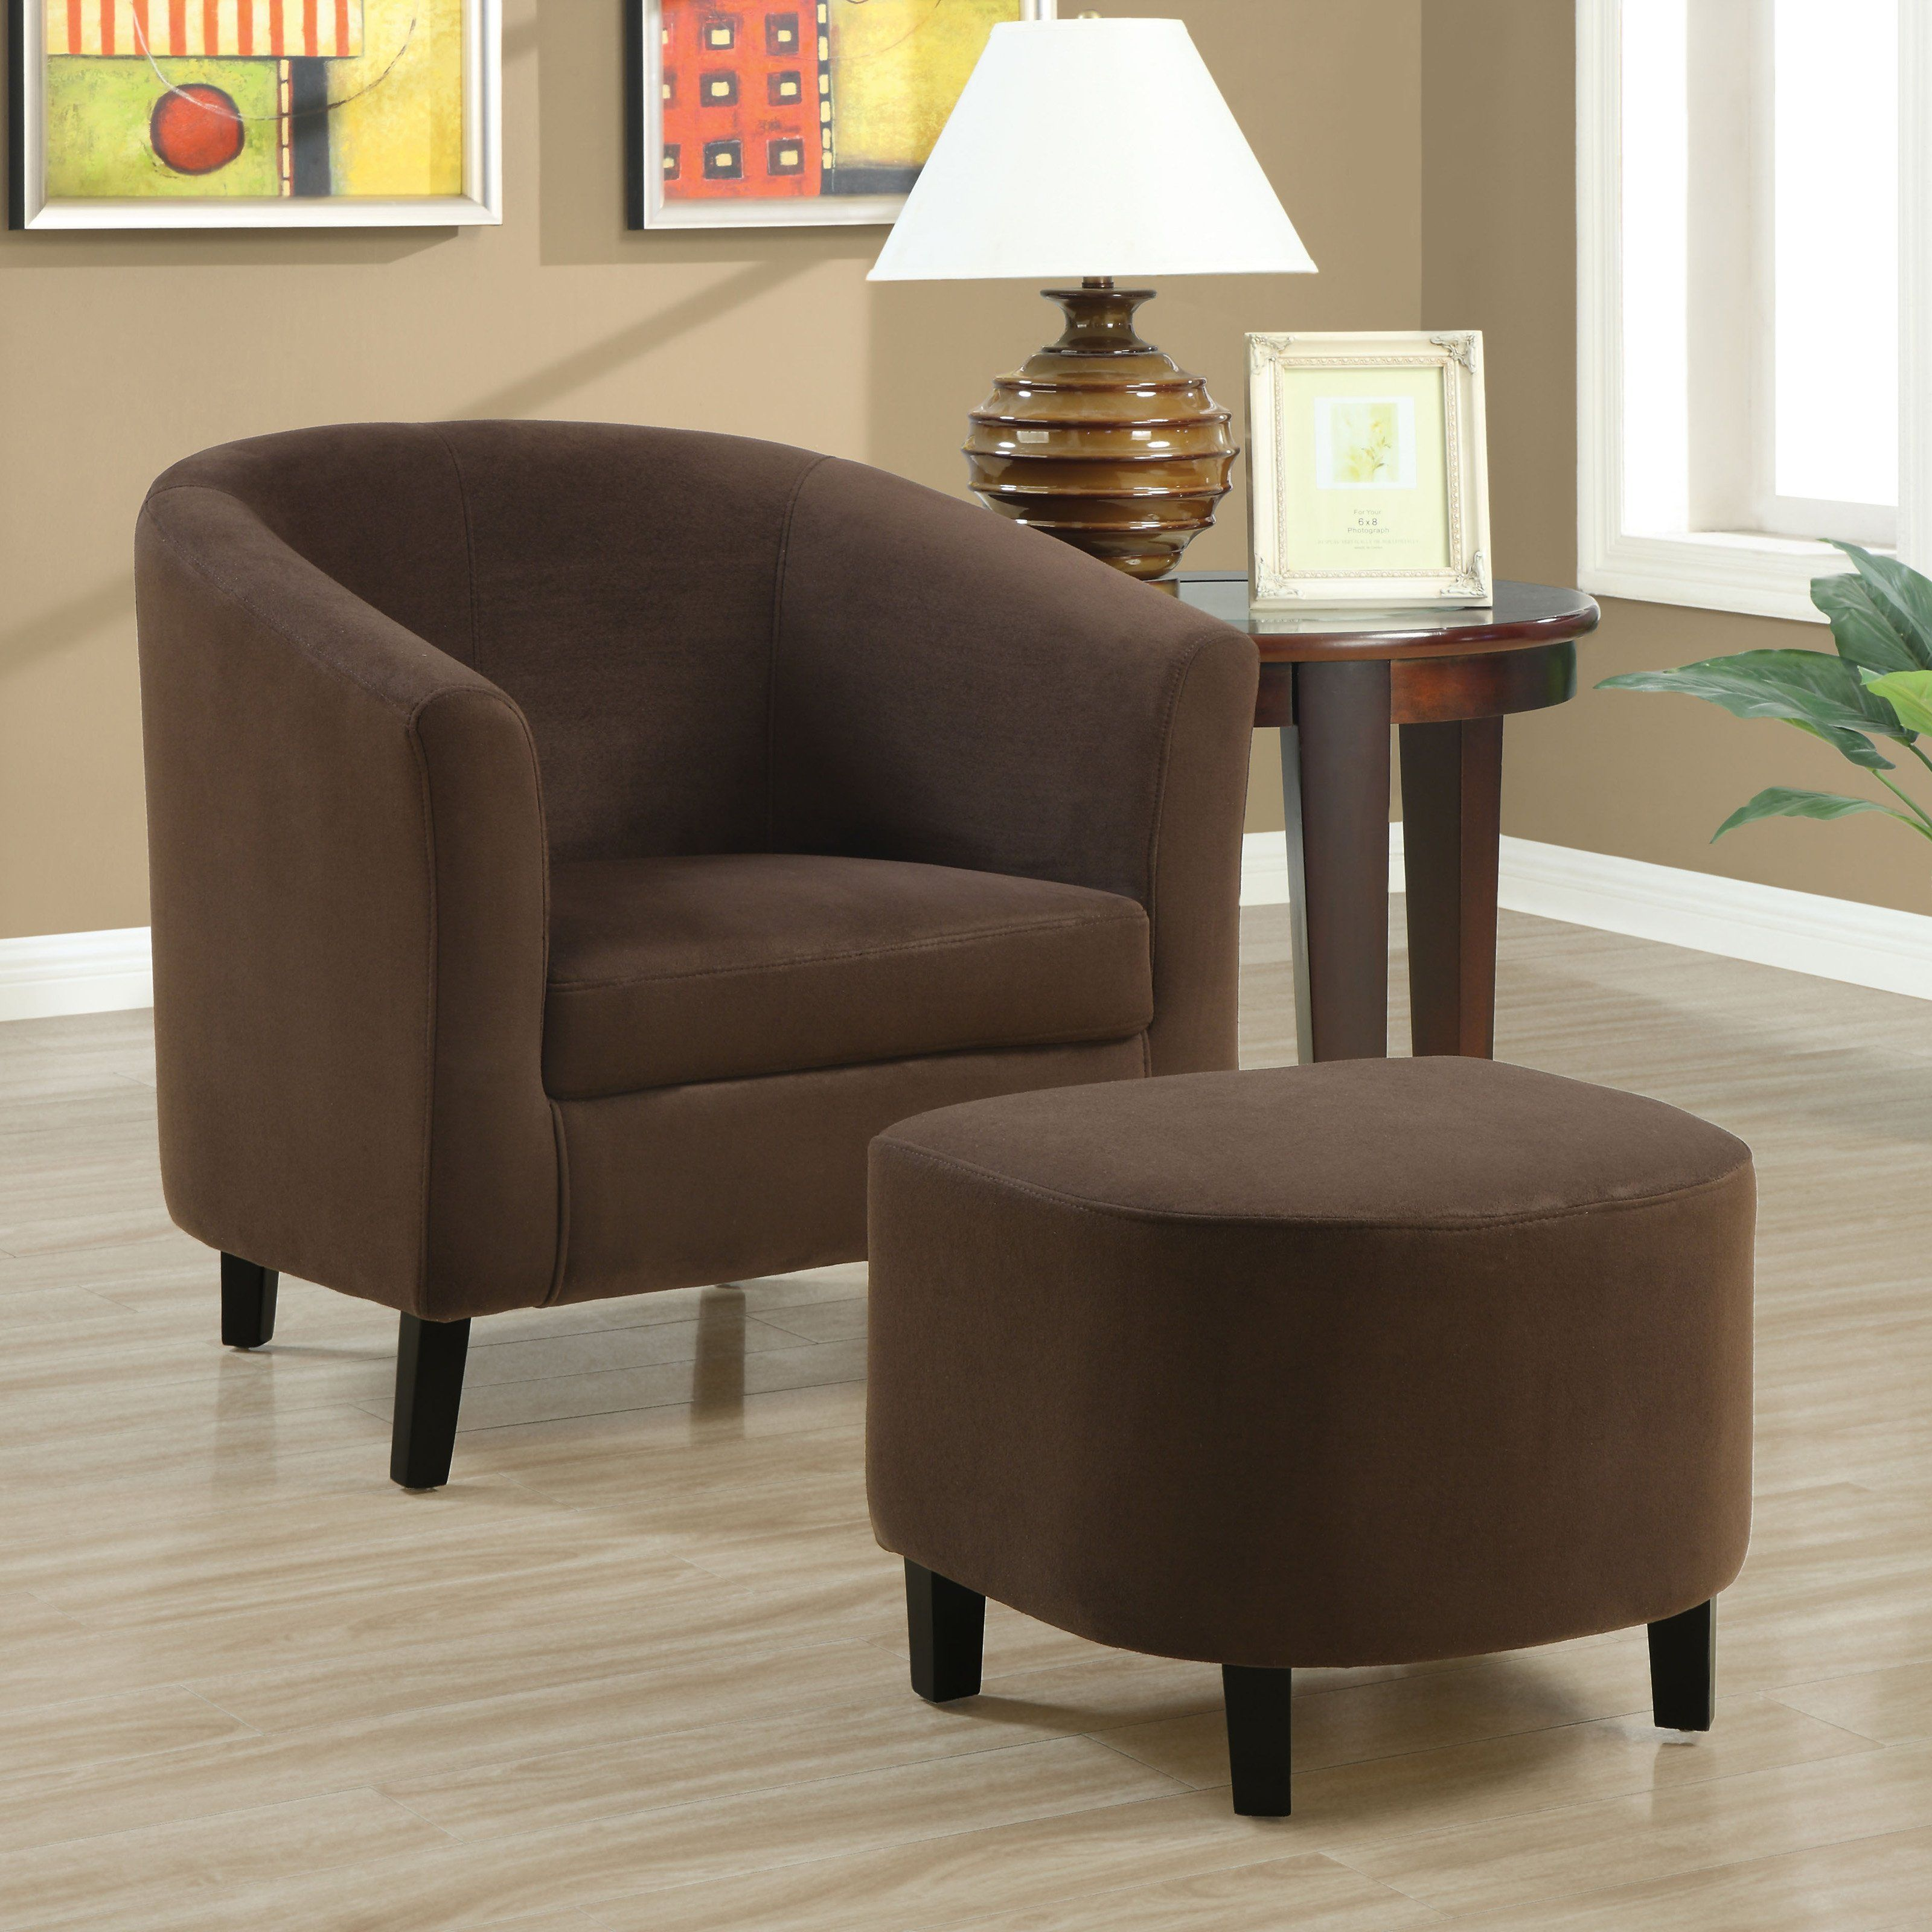 chocolate brown living room chairs orange curtains have to it asian padded micro fiber chair and ottoman 299 99